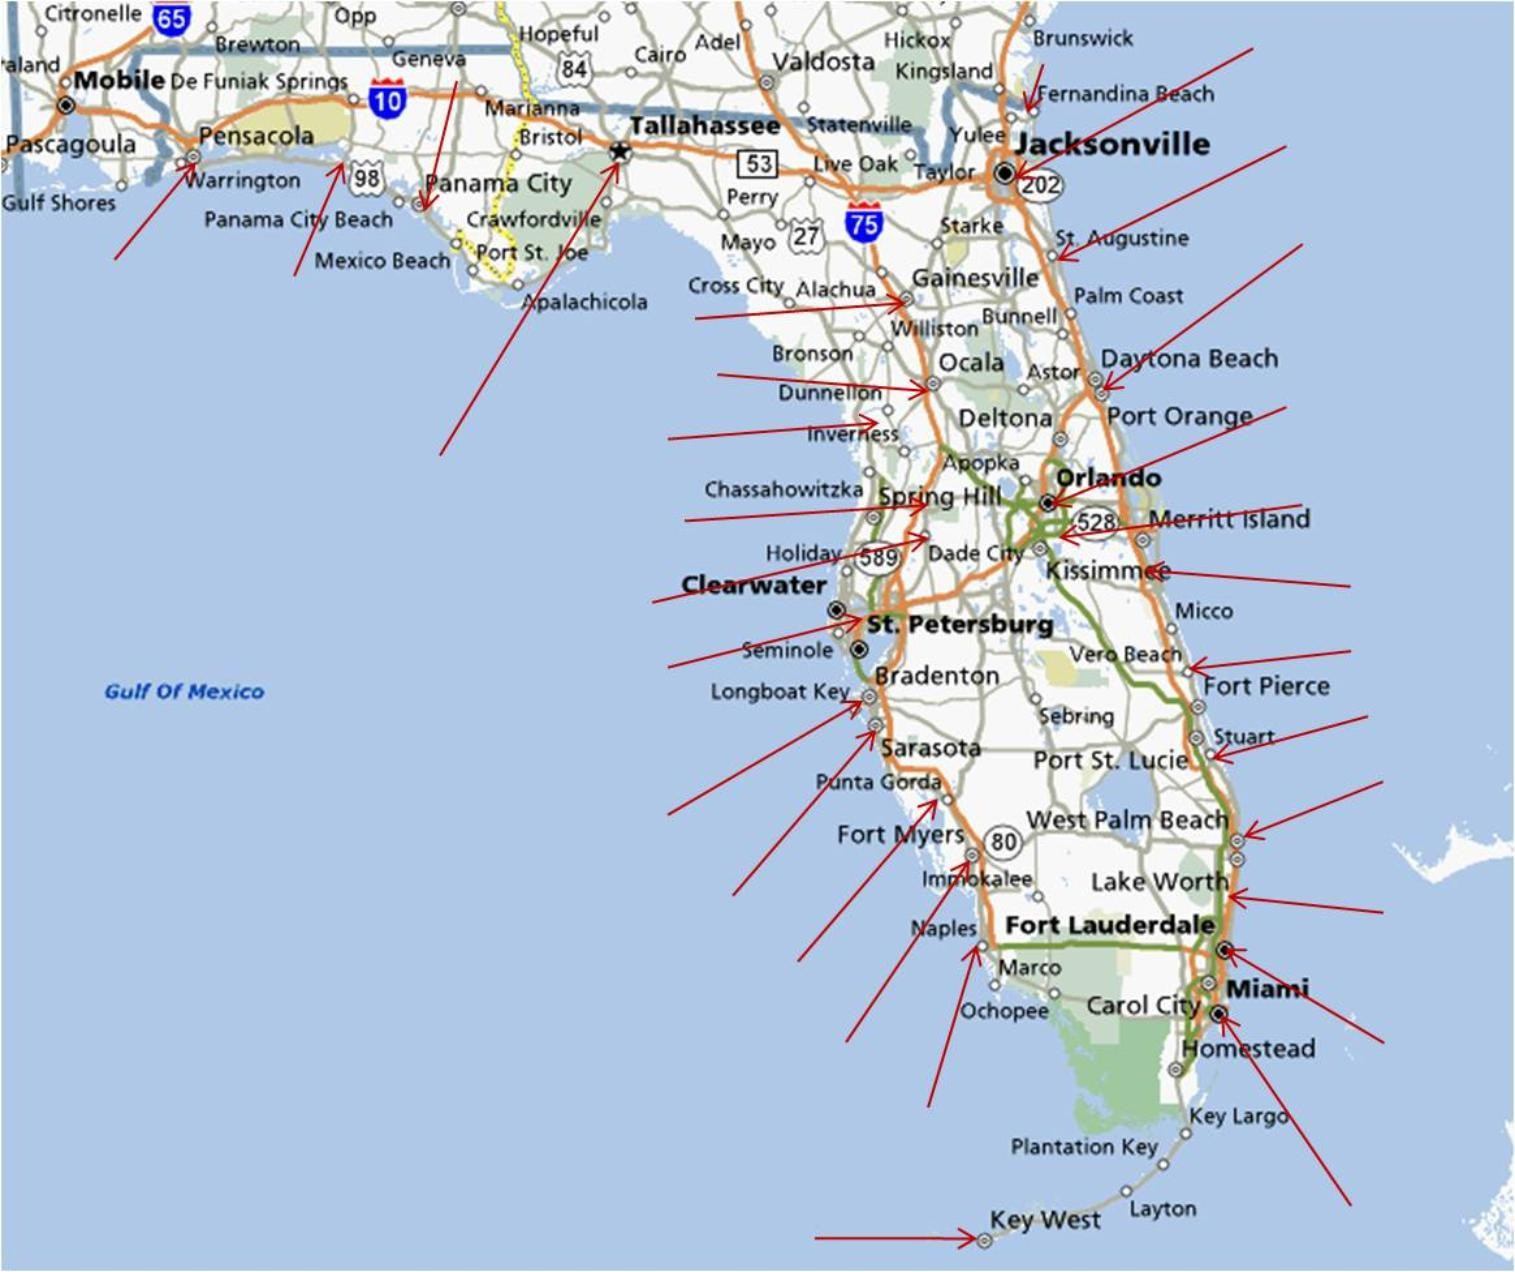 Mexico Beach Florida Map From Windsurfaddicts 9 - Judecelestin2010 - Yulee Florida Map